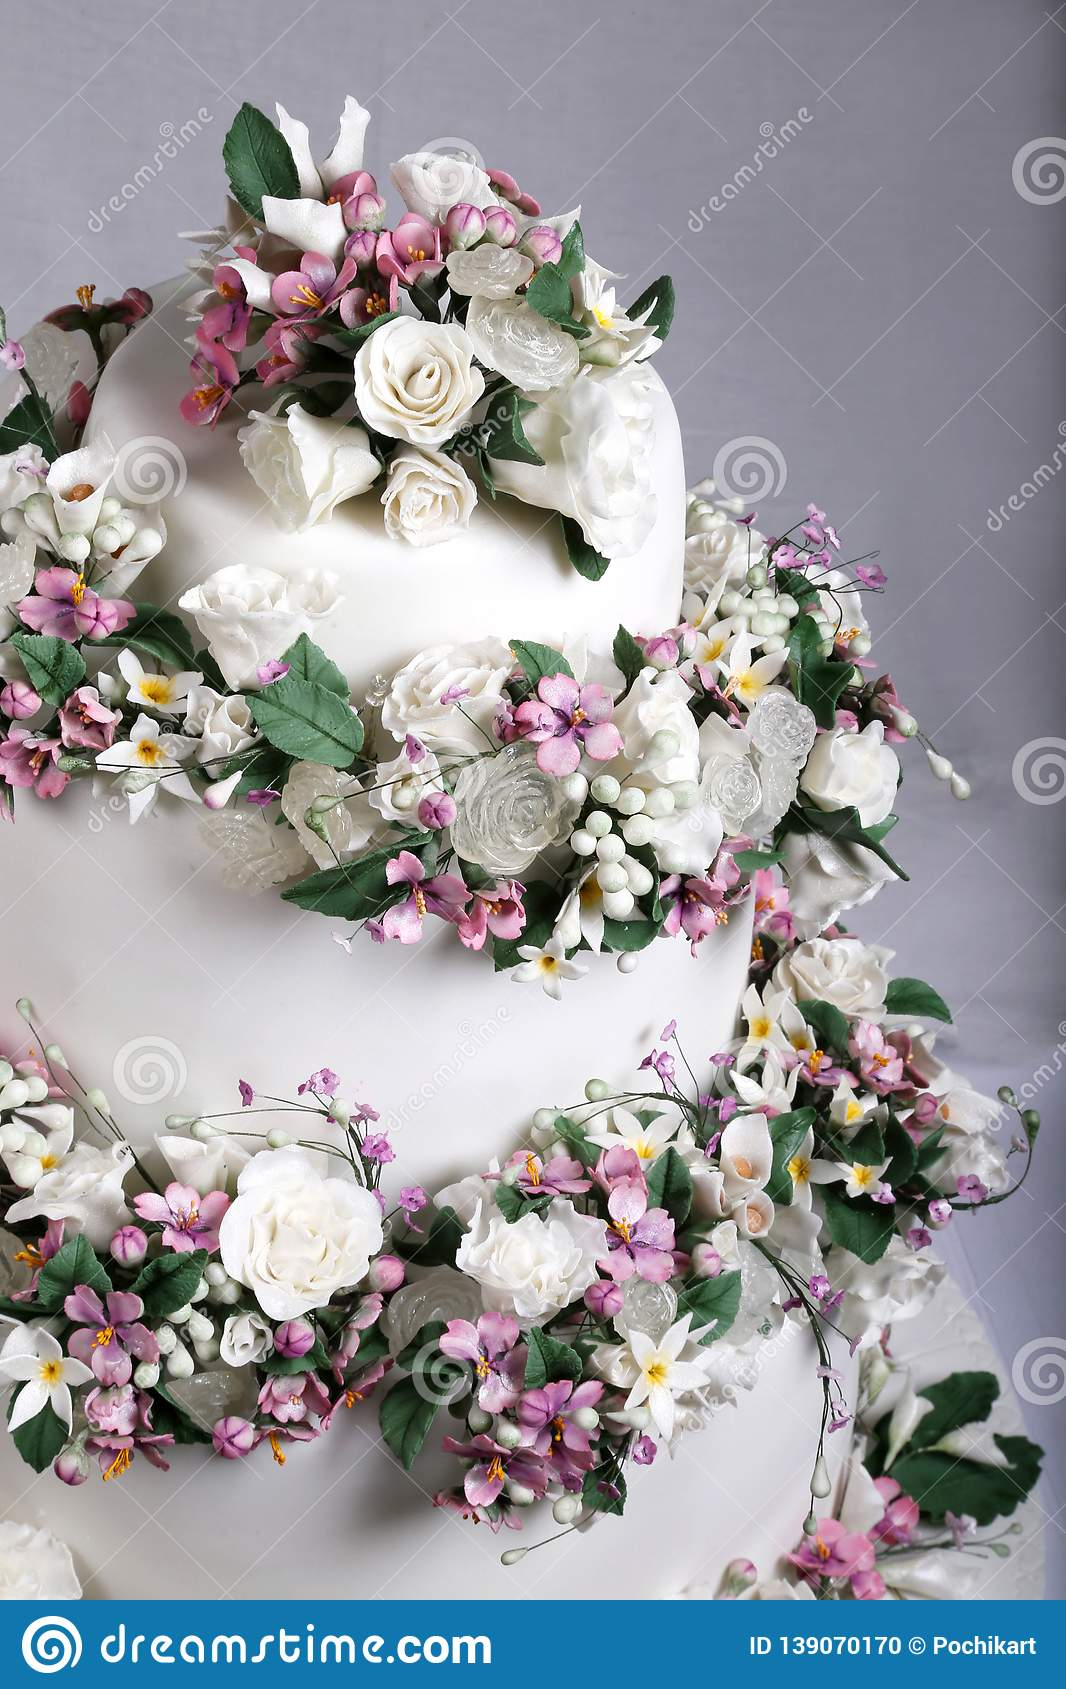 Close up image of Wedding Cake Topper with Sugar Flowers